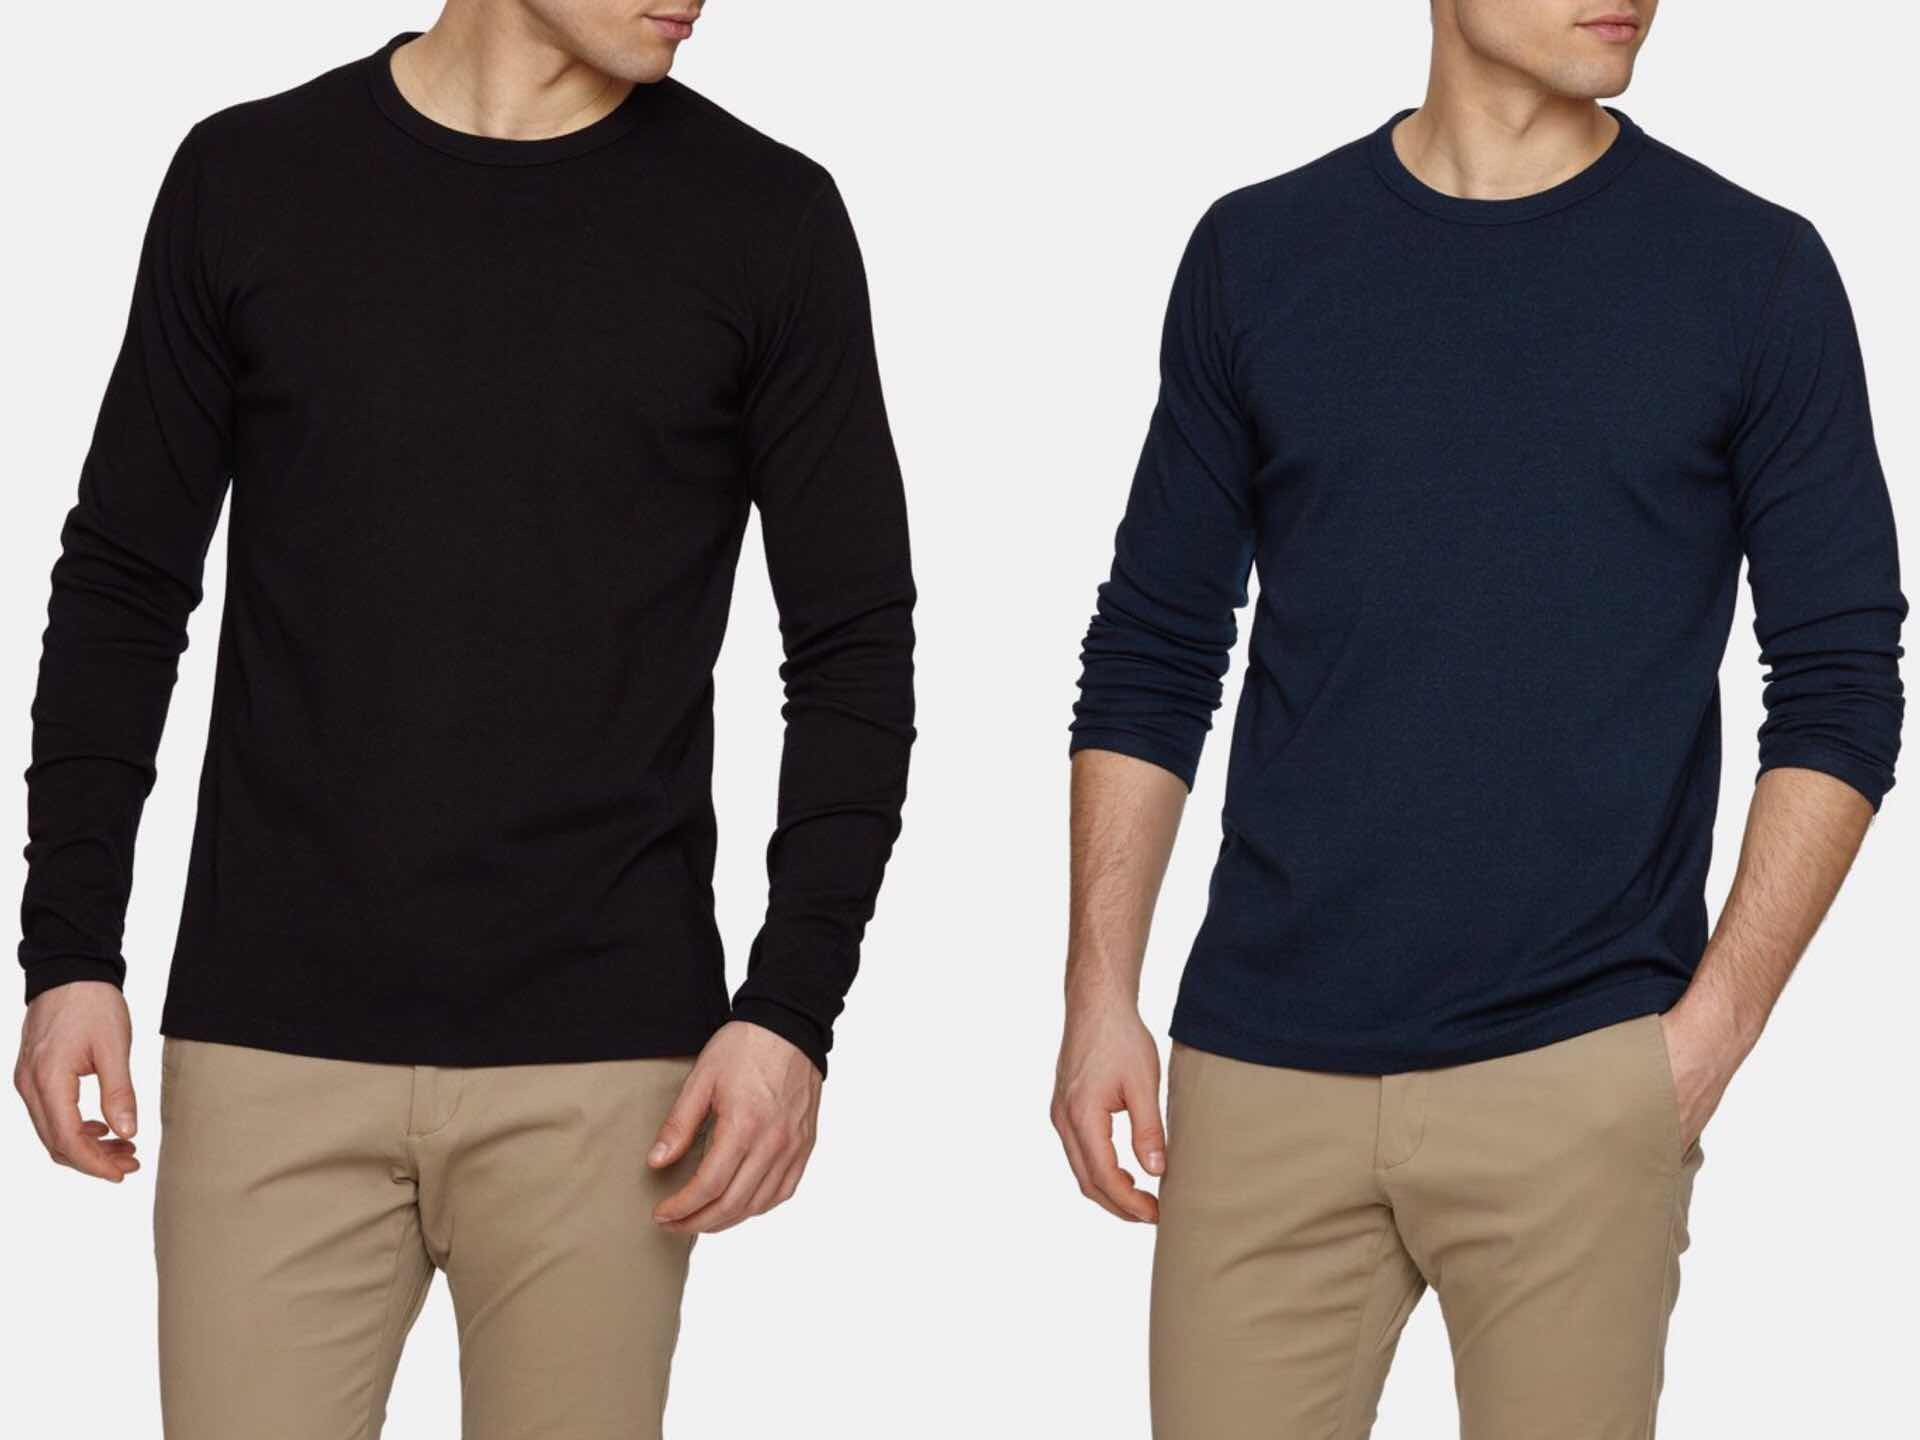 Wool & Prince's Heavy Crew Neck sweatshirts. ($118, available in black and navy)